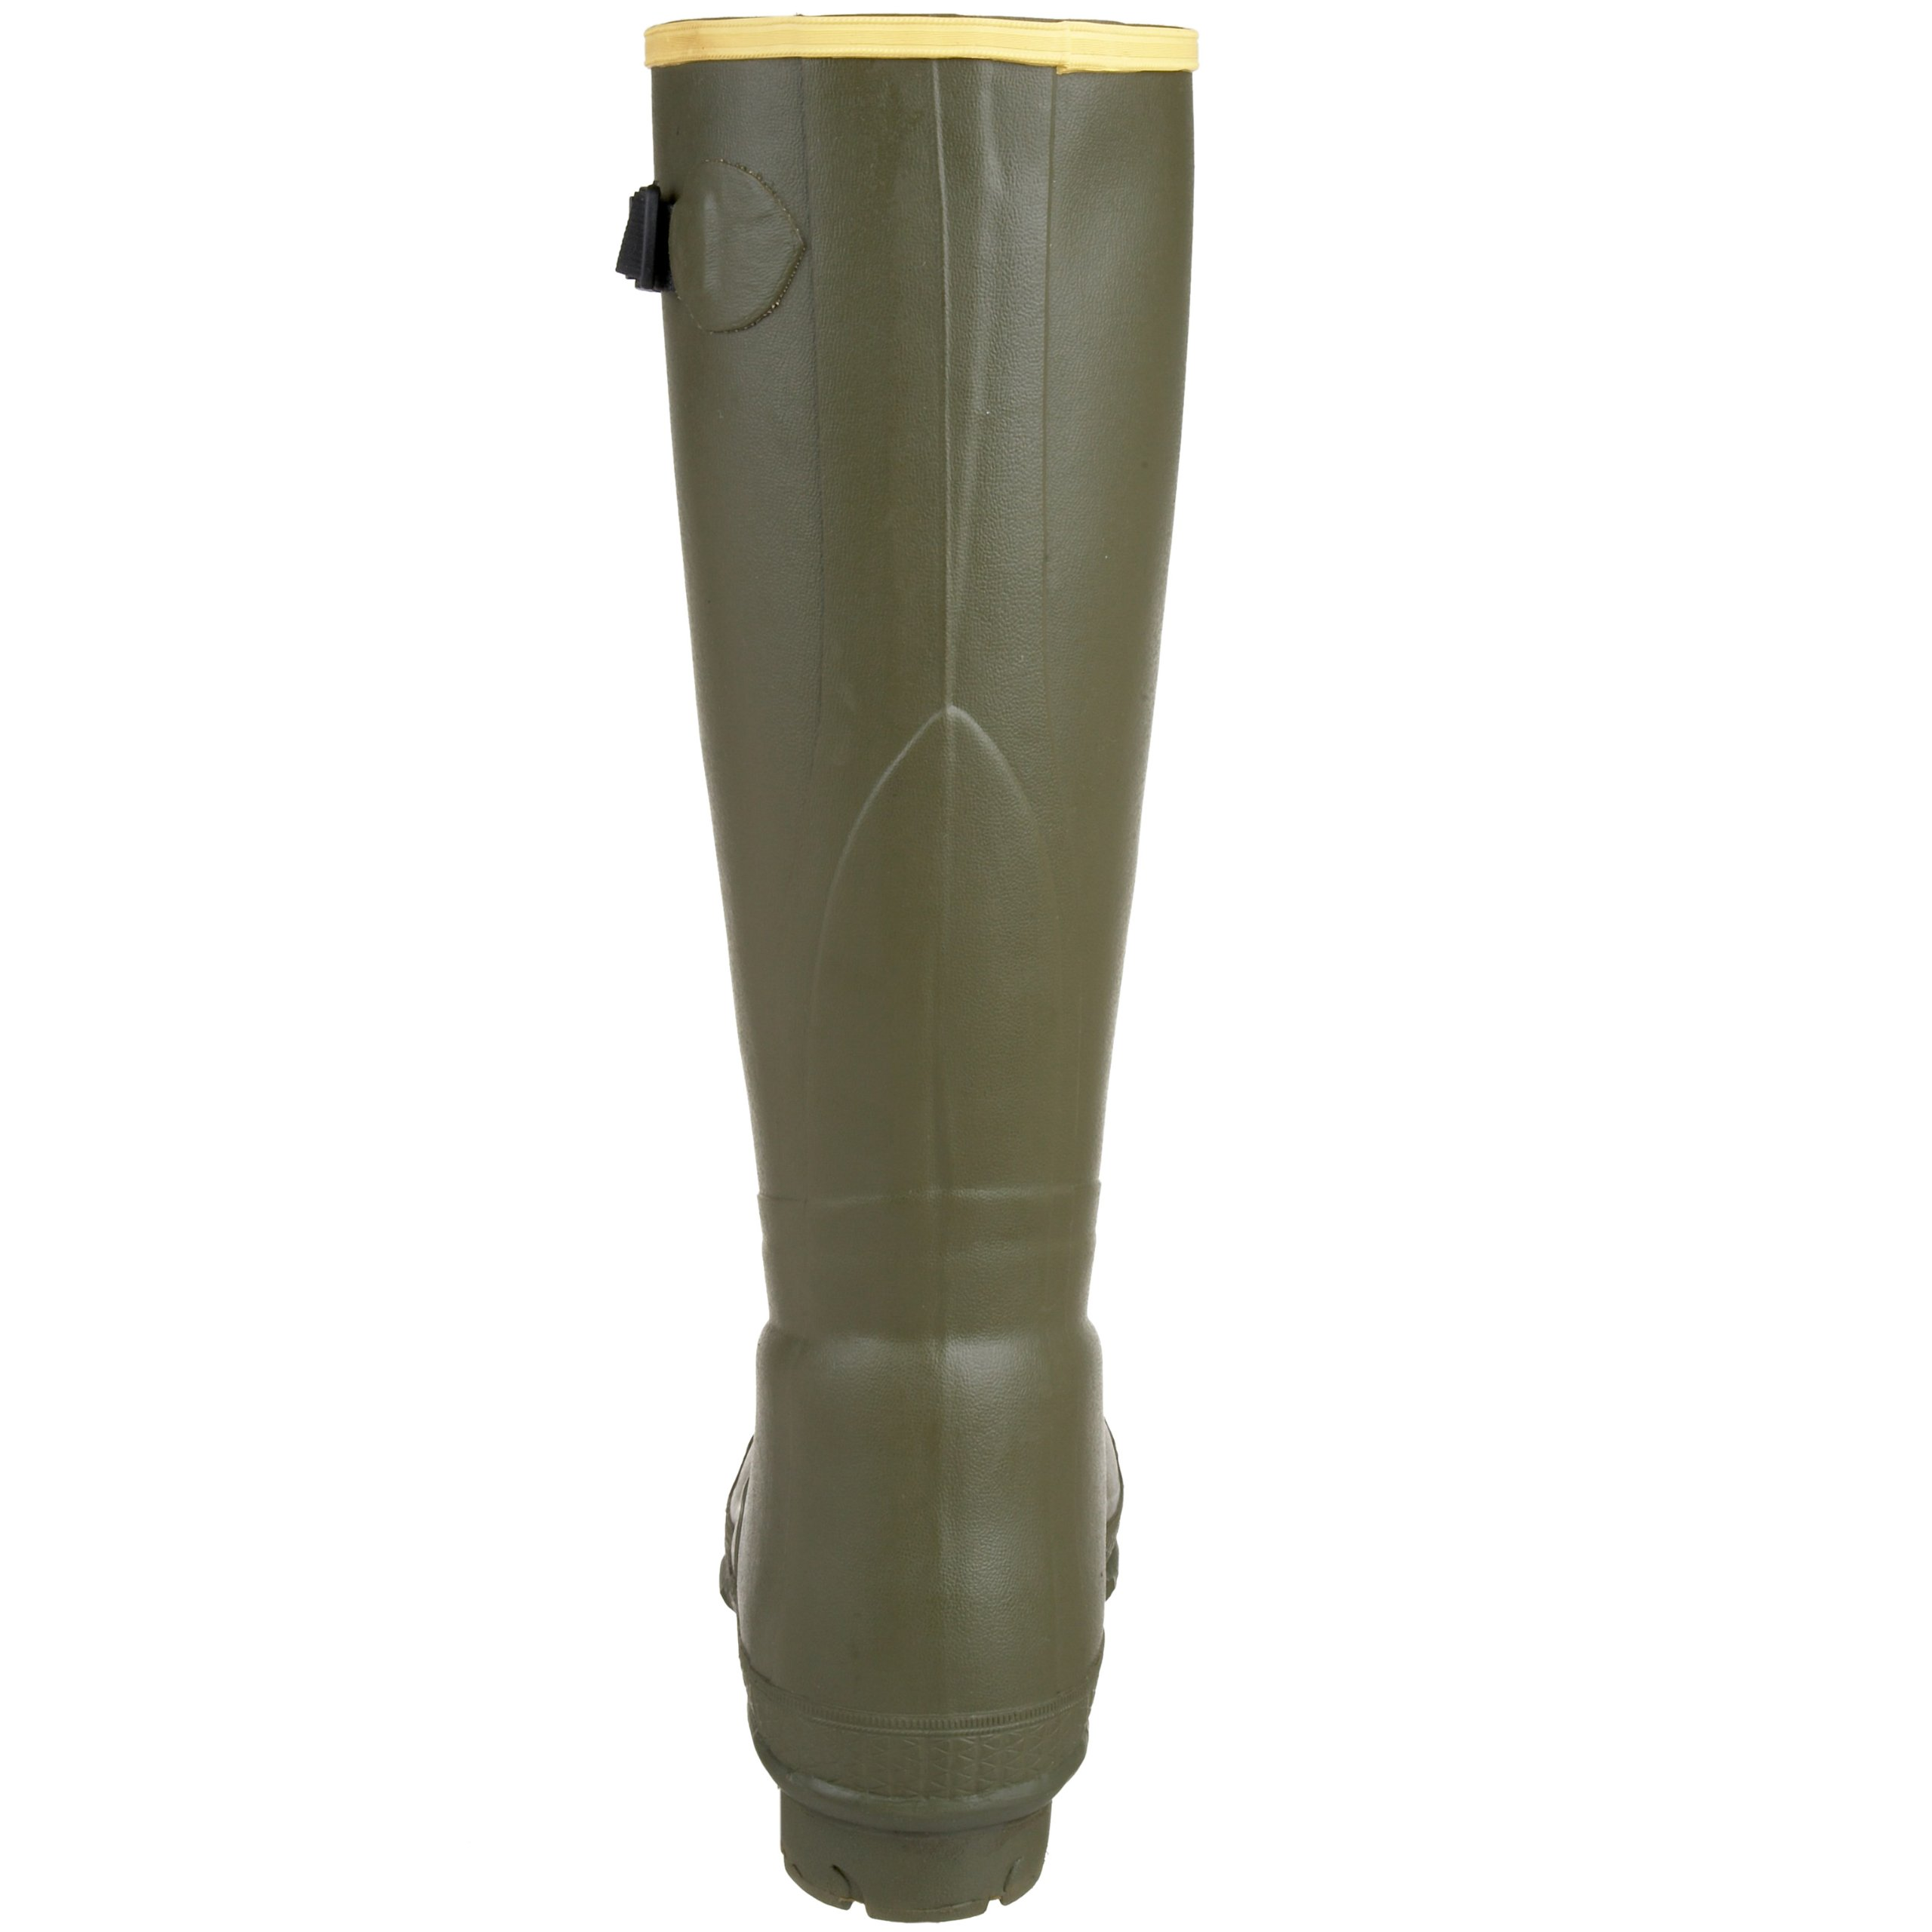 LaCrosse Men's 18'' Burly Classic Hunting Boot,OD Green,5 M US by Lacrosse (Image #2)